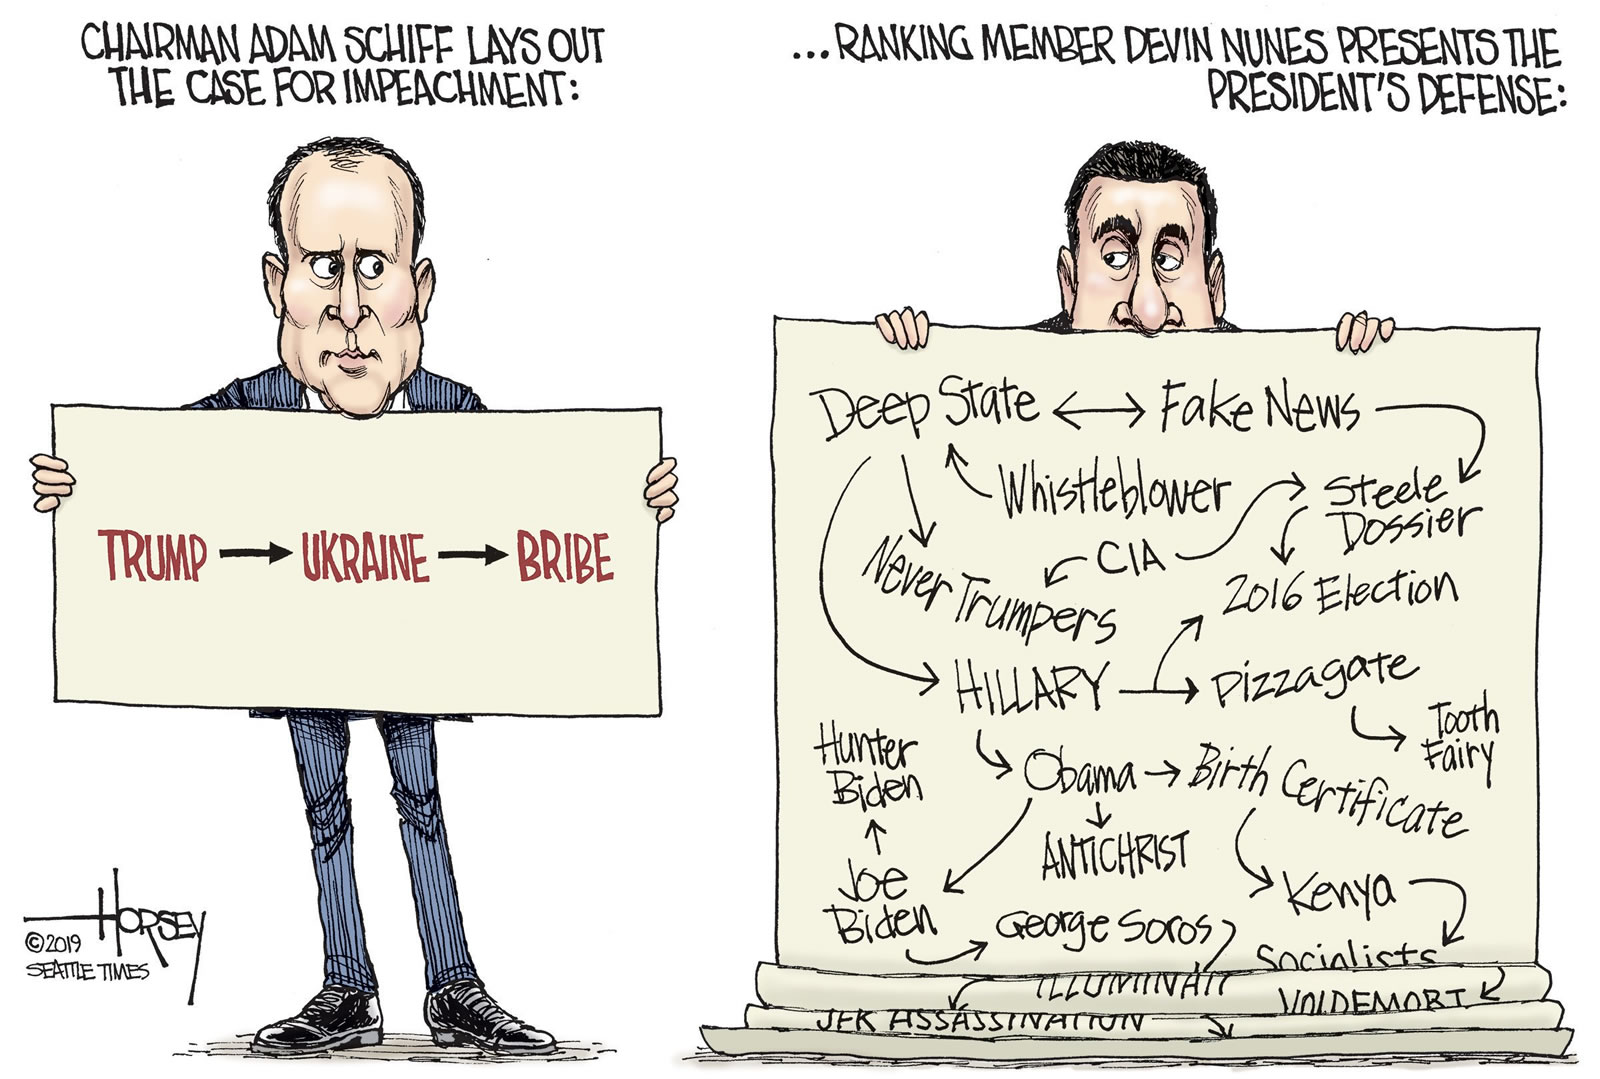 Editorial cartoon comparing Adam Schiff's case for impeachment (Trump - Ukraine - Bribe) vs. Devin Nunes' defense of Trump, which cites multiple conspiracy theories including the Deep State, Fake News, the CIA, Hillary Clinton, Pizzagate, George Soros, and so on.